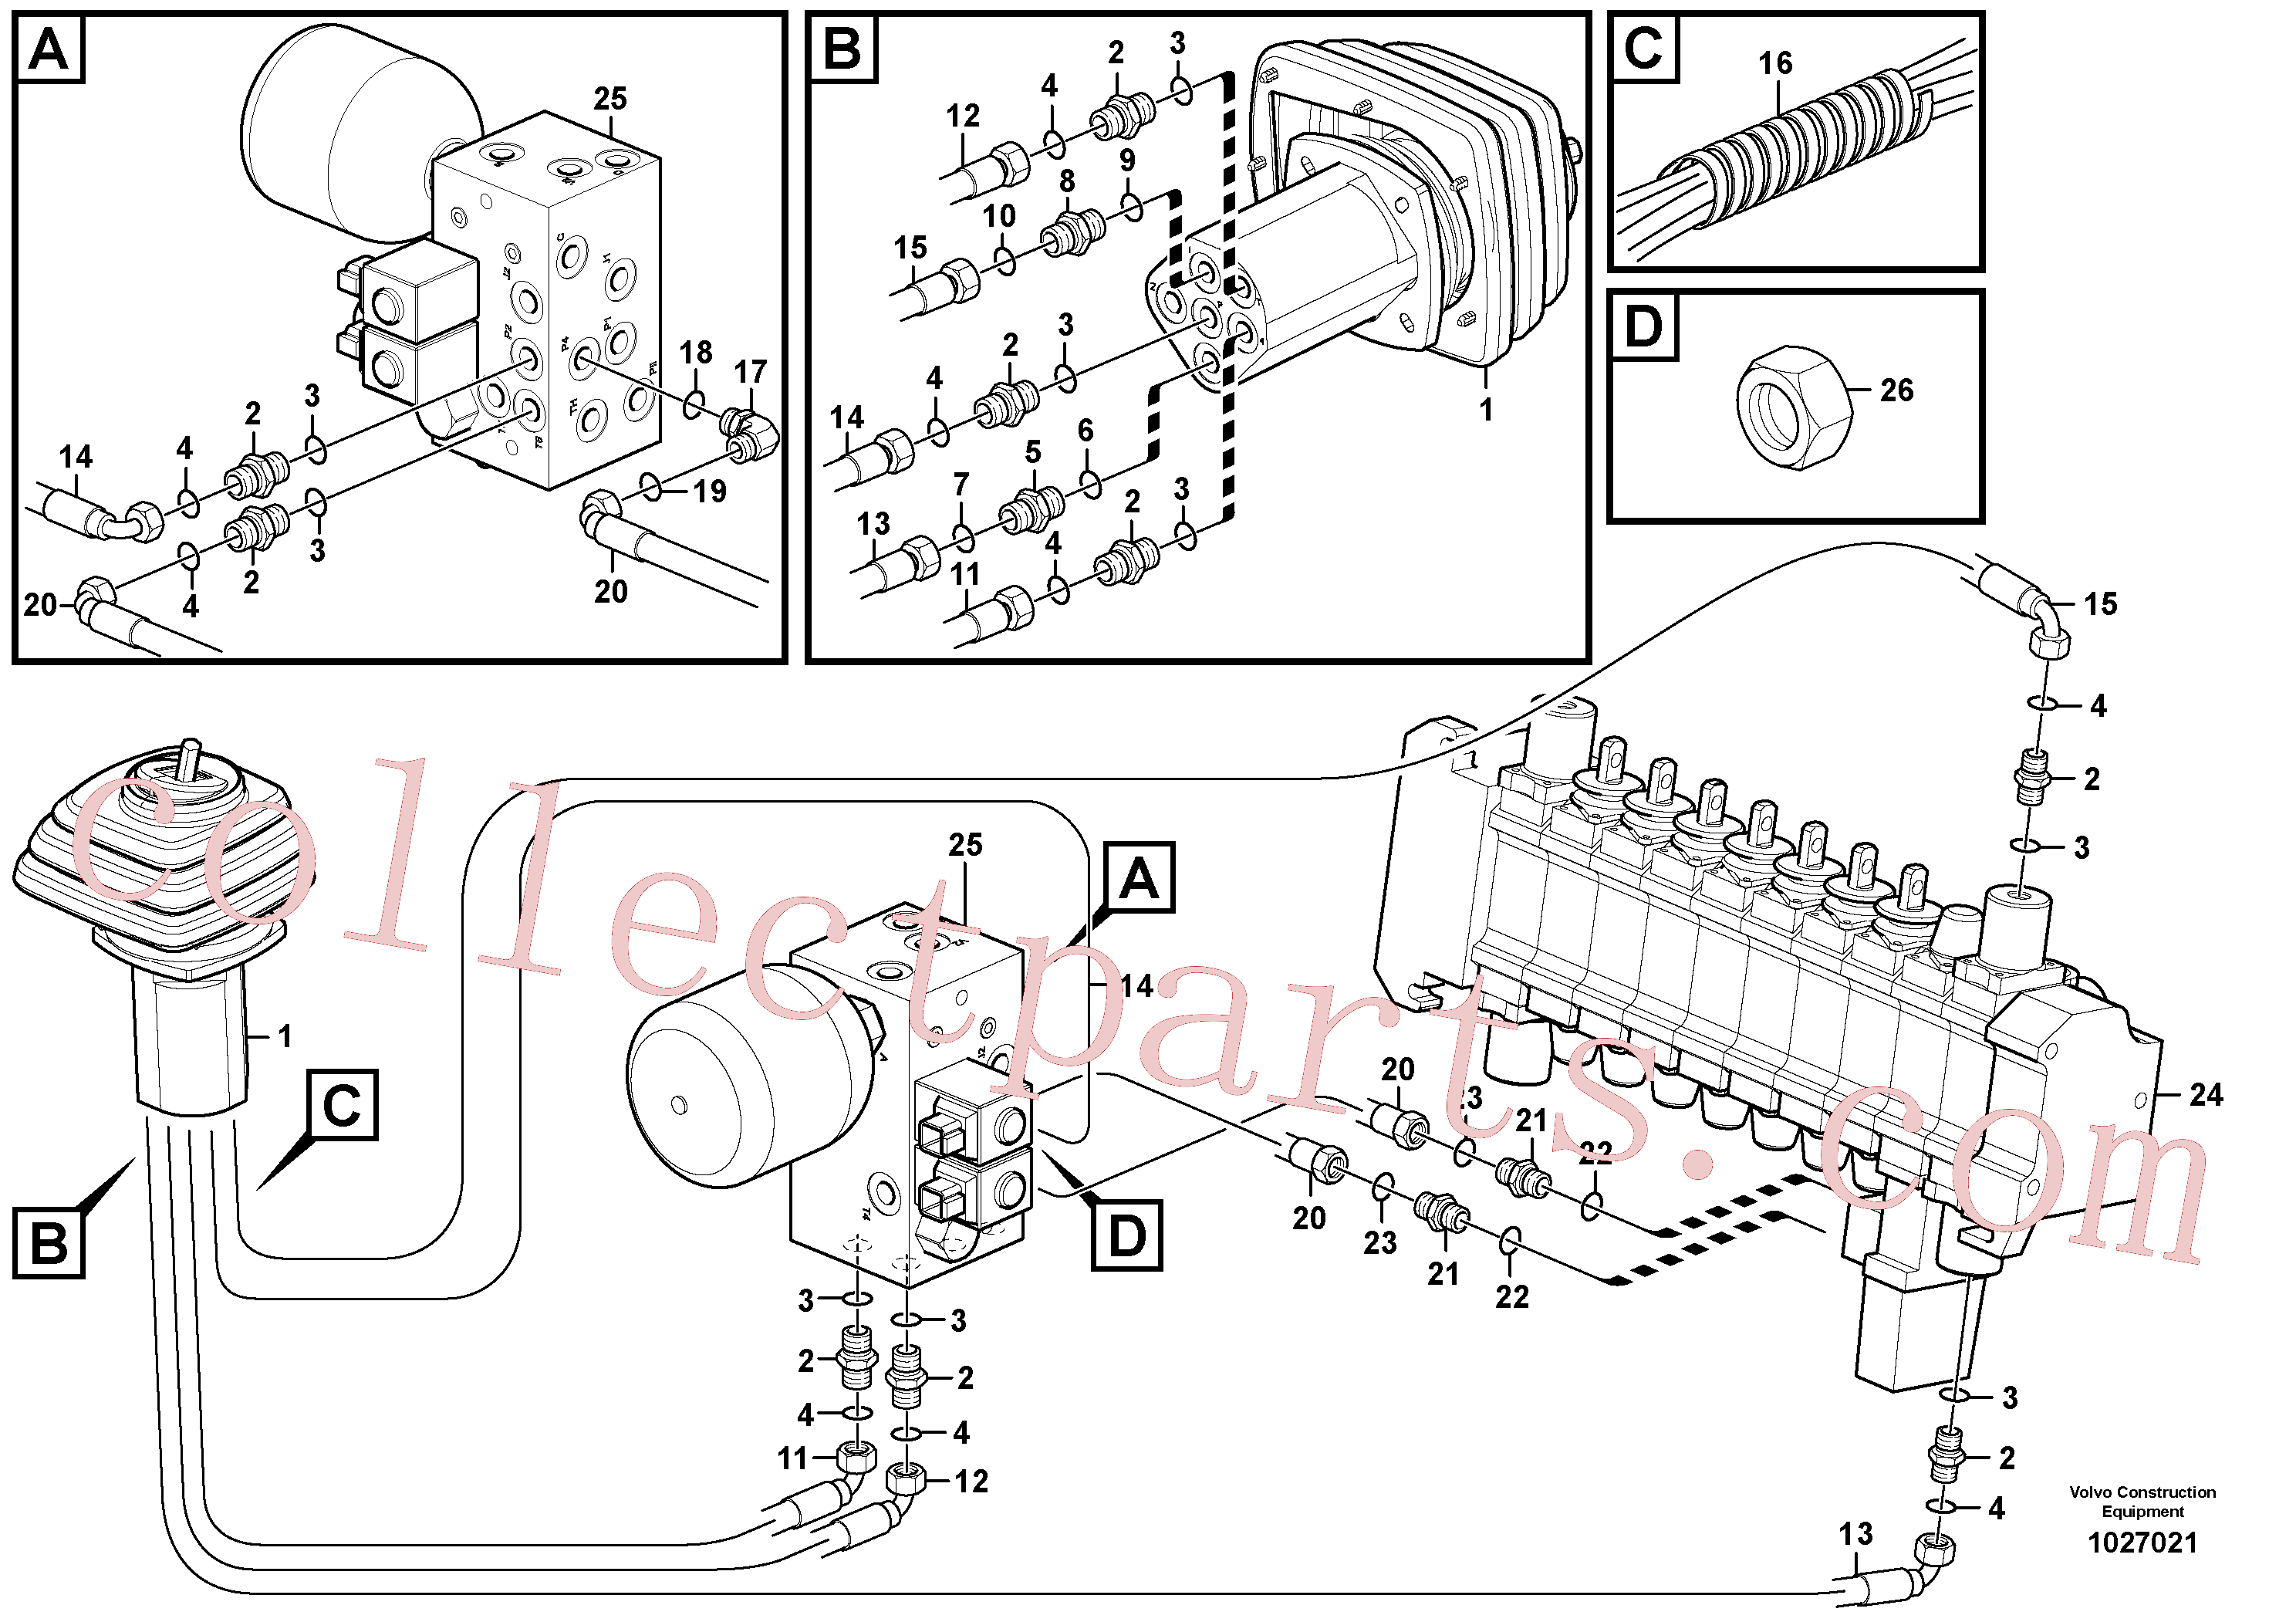 VOE14211855 for Volvo SE- Loader controls with safety accumulator(1027021 assembly)